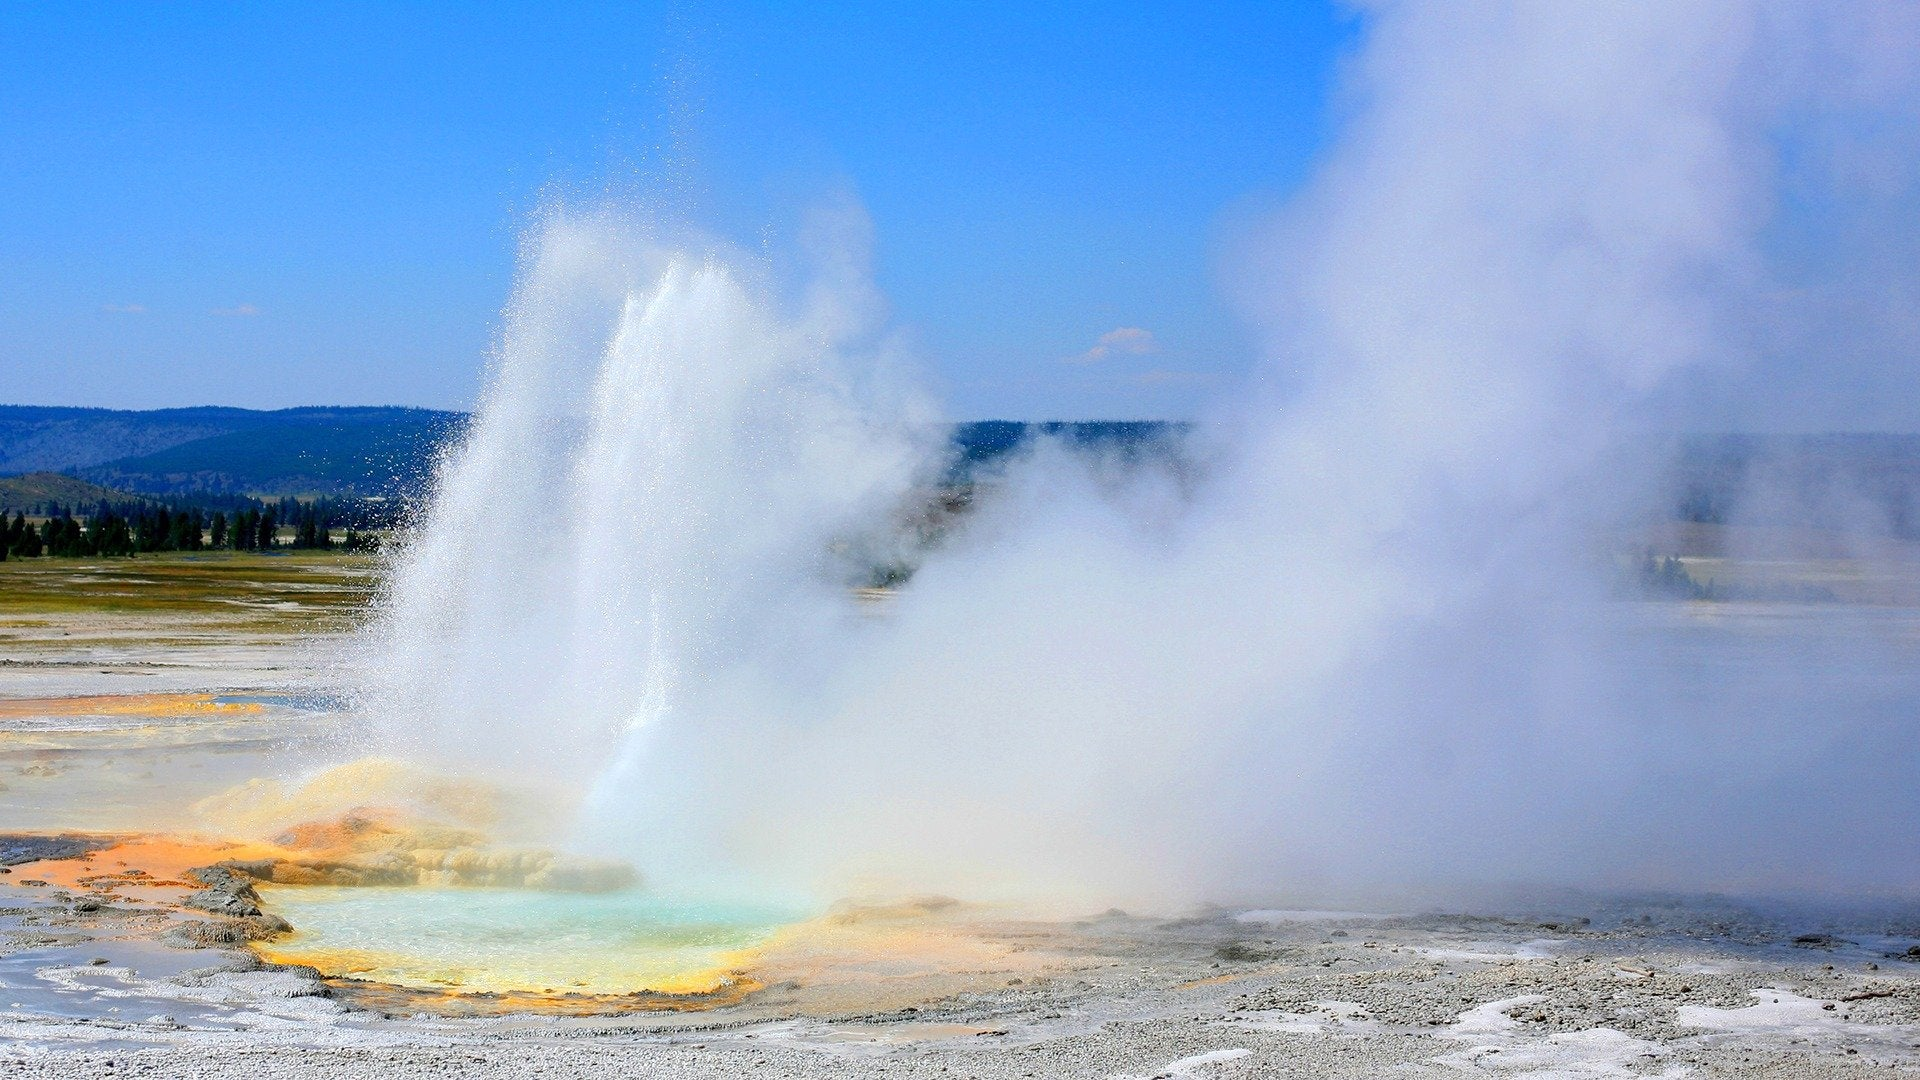 Planet Earth: Yellowstone